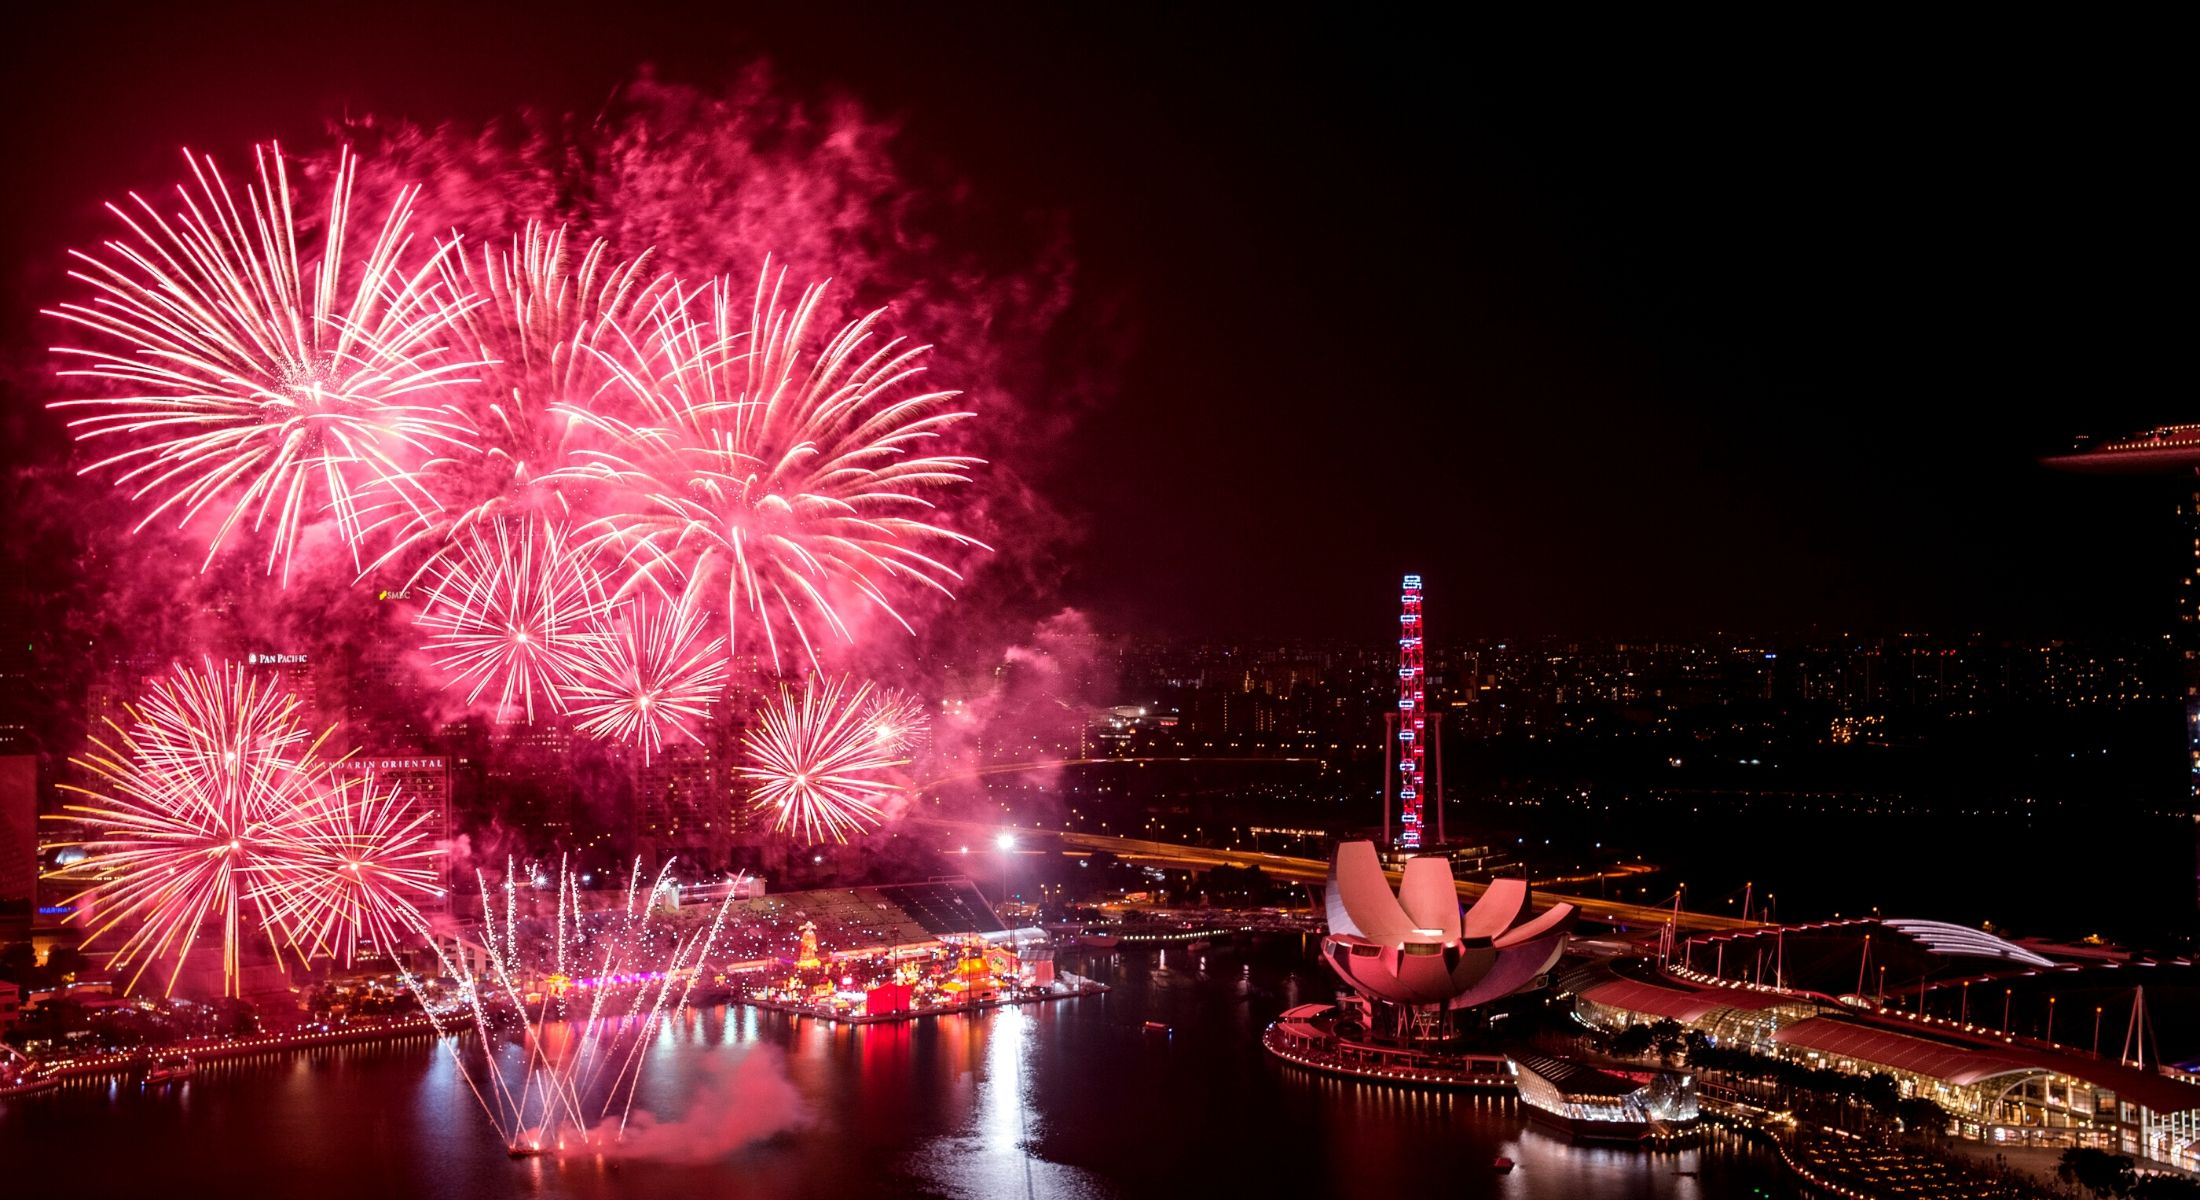 Singapore Chinese New Year Fireworks